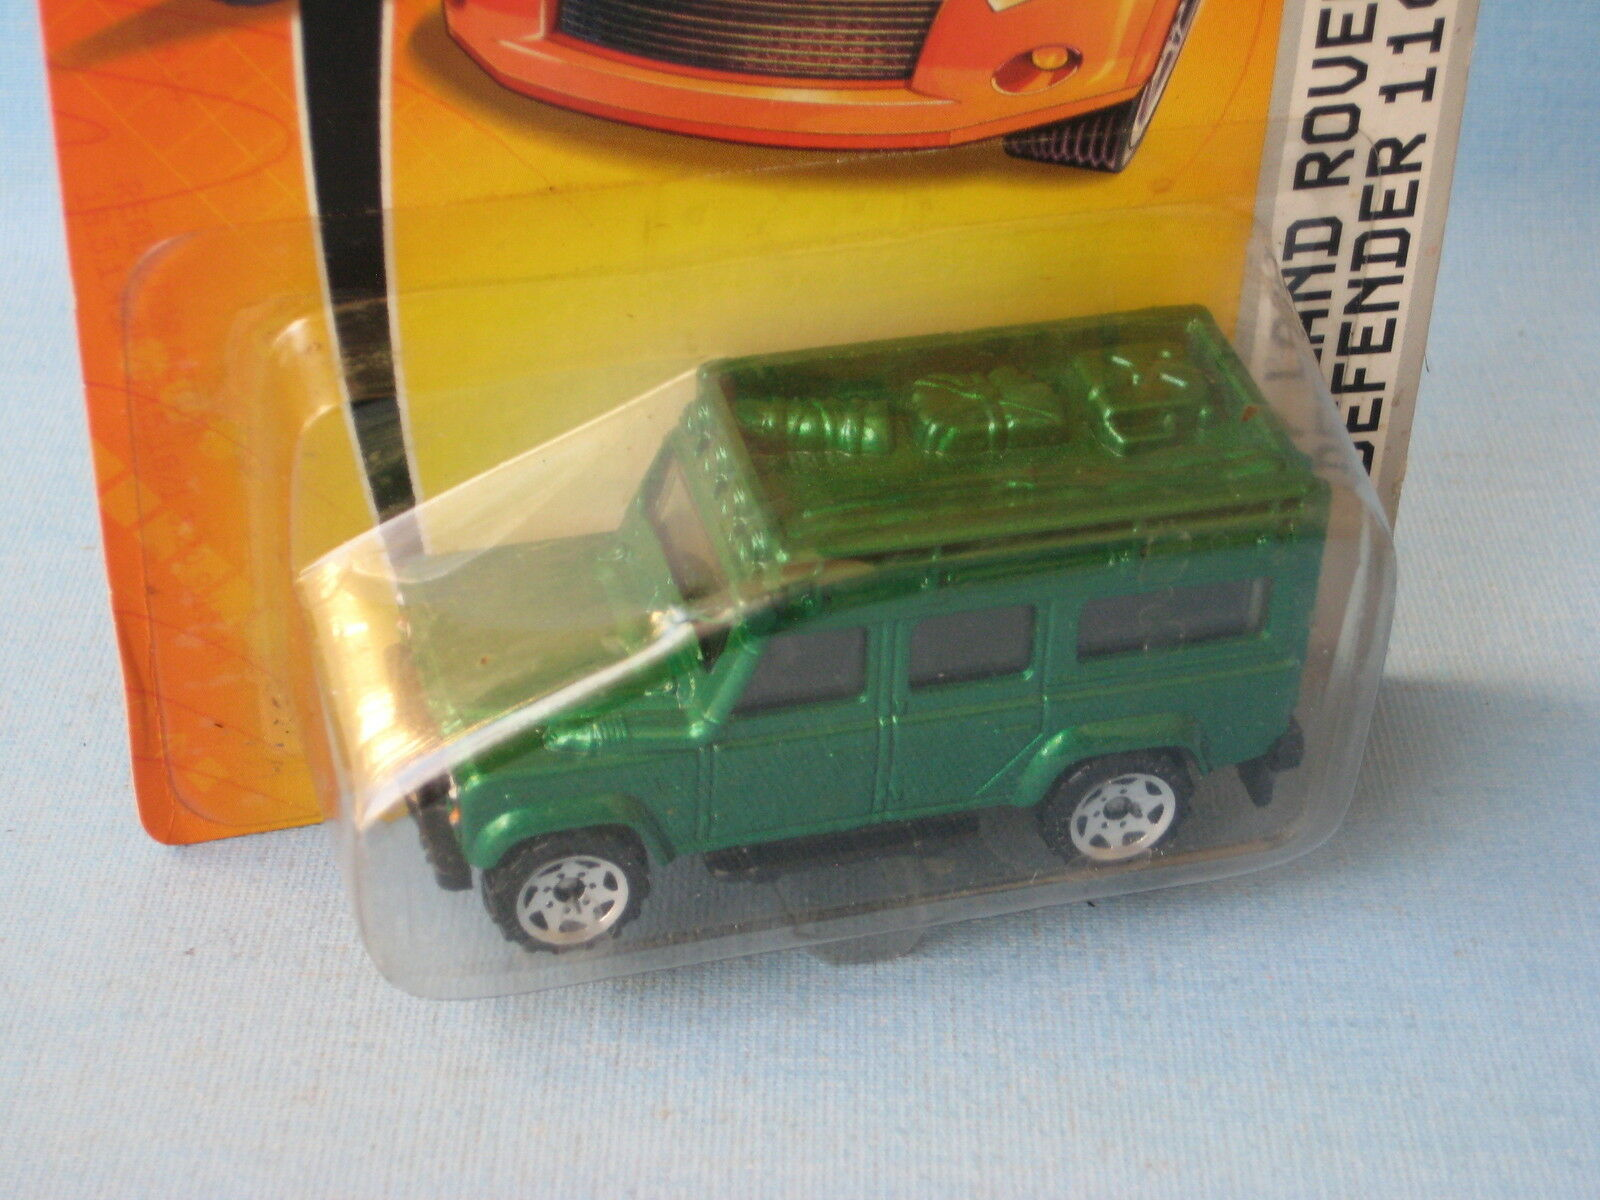 Matchbox Land Rover 110 Defender Metallic Green Body Toy Model Car 70mm RARE